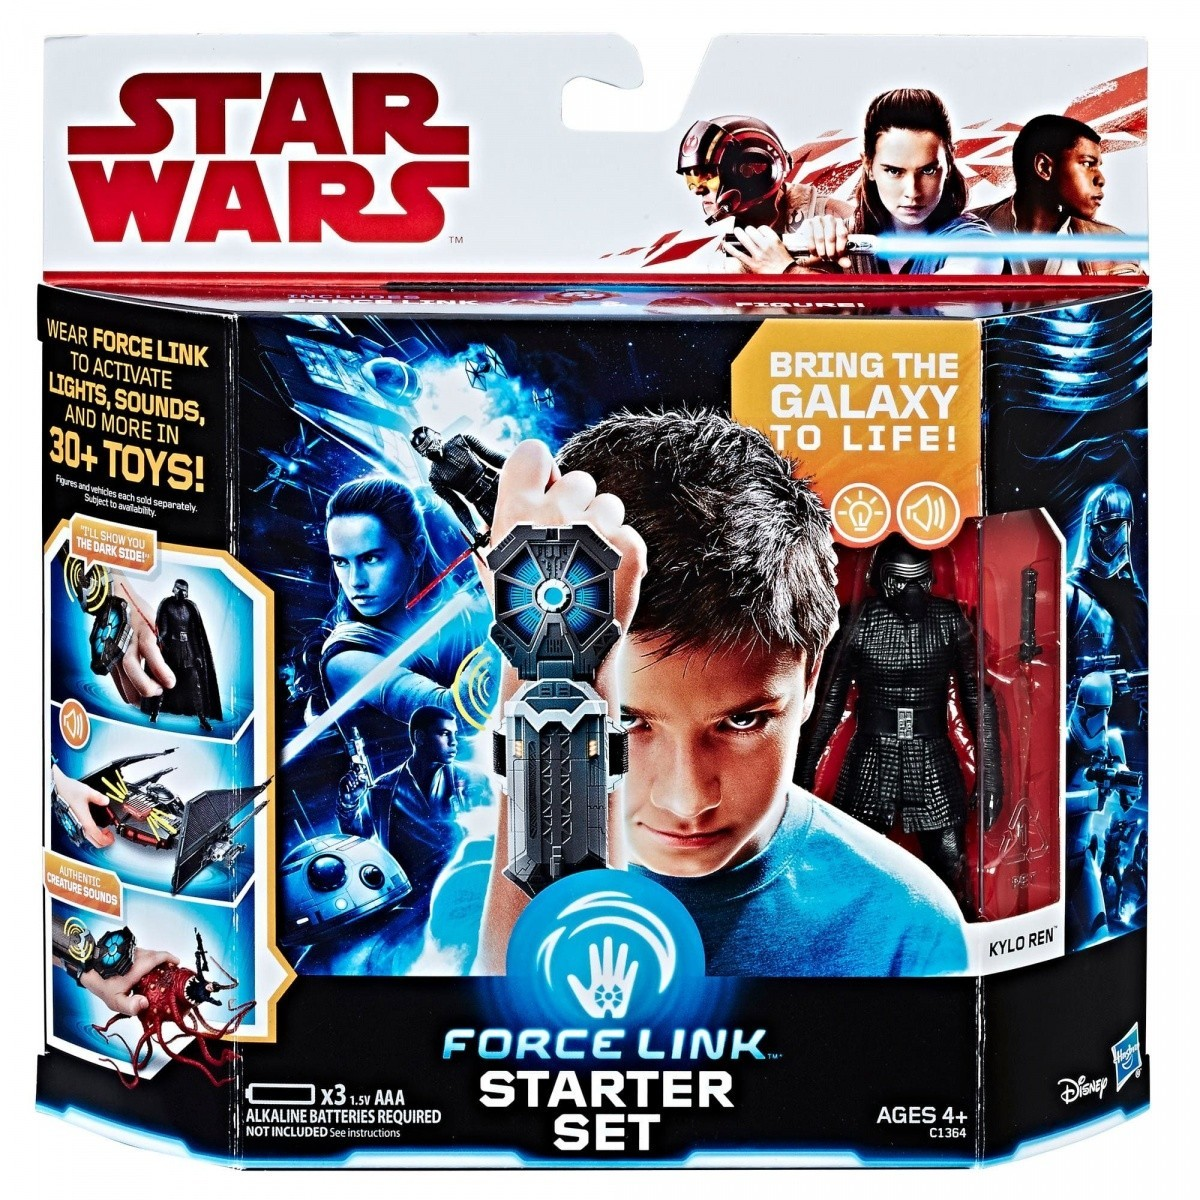 STAR WARS E8 Starter Set